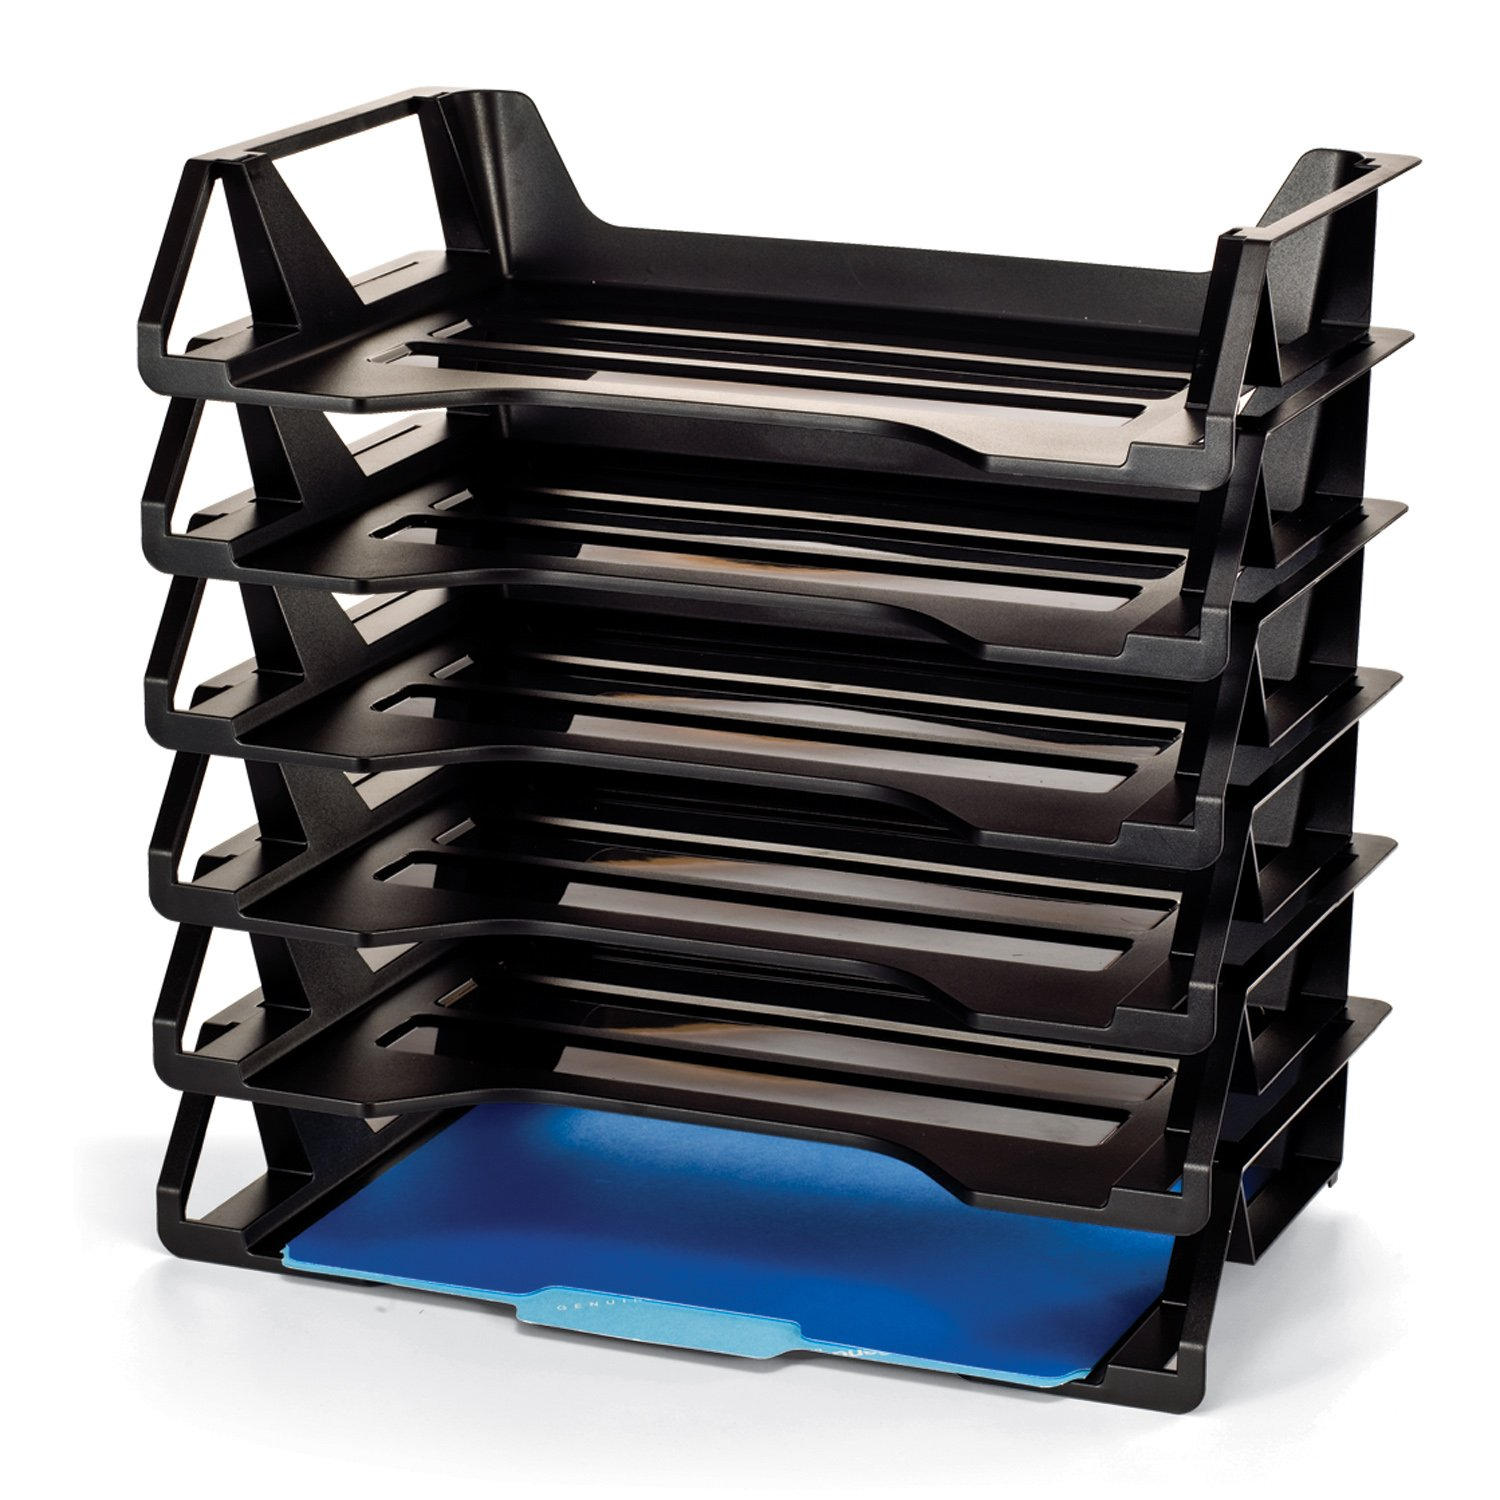 Officemate OIC Achieva Side Load Letter Tray, Recycled, Black, 6 Pack (26212) by Officemate